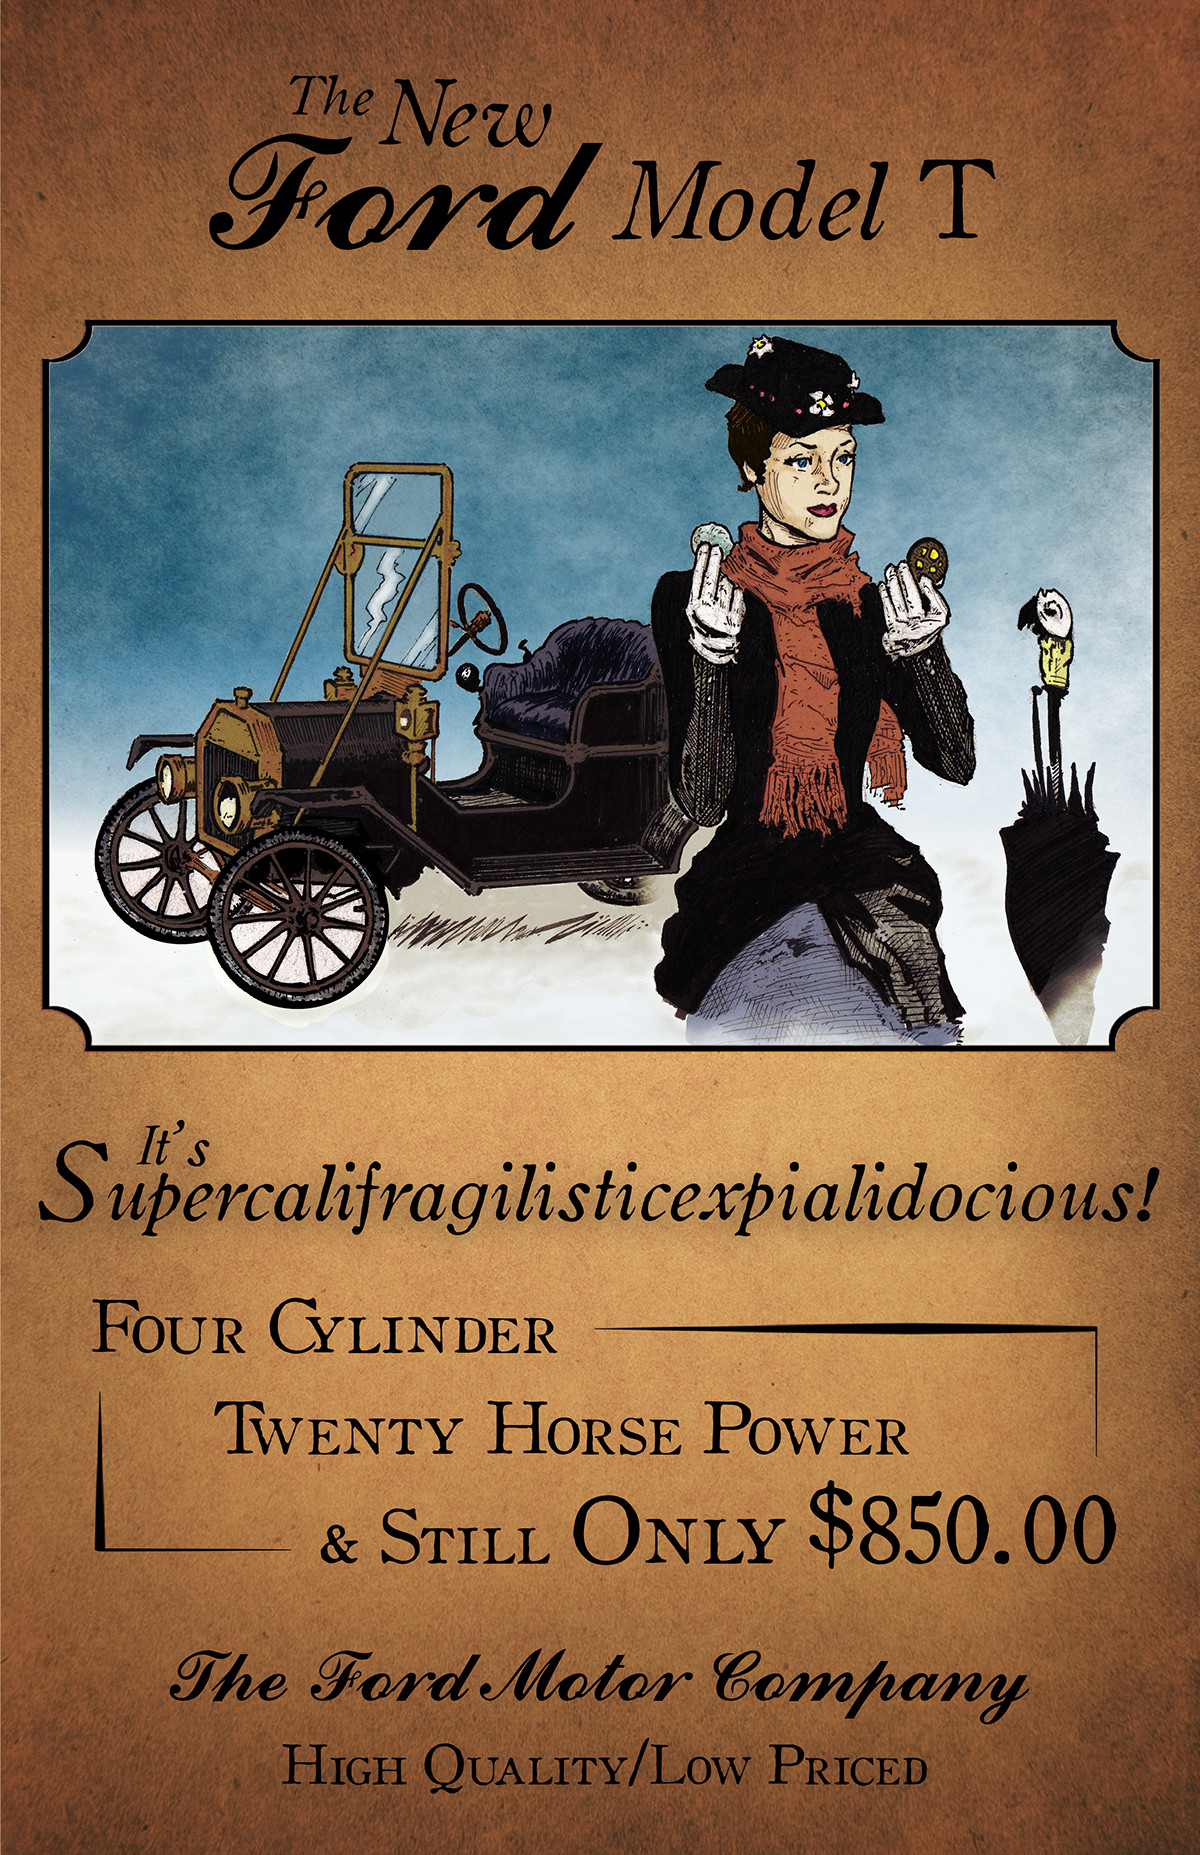 The New Supercalifragilisticexpialidocious Ford Model T on Behance